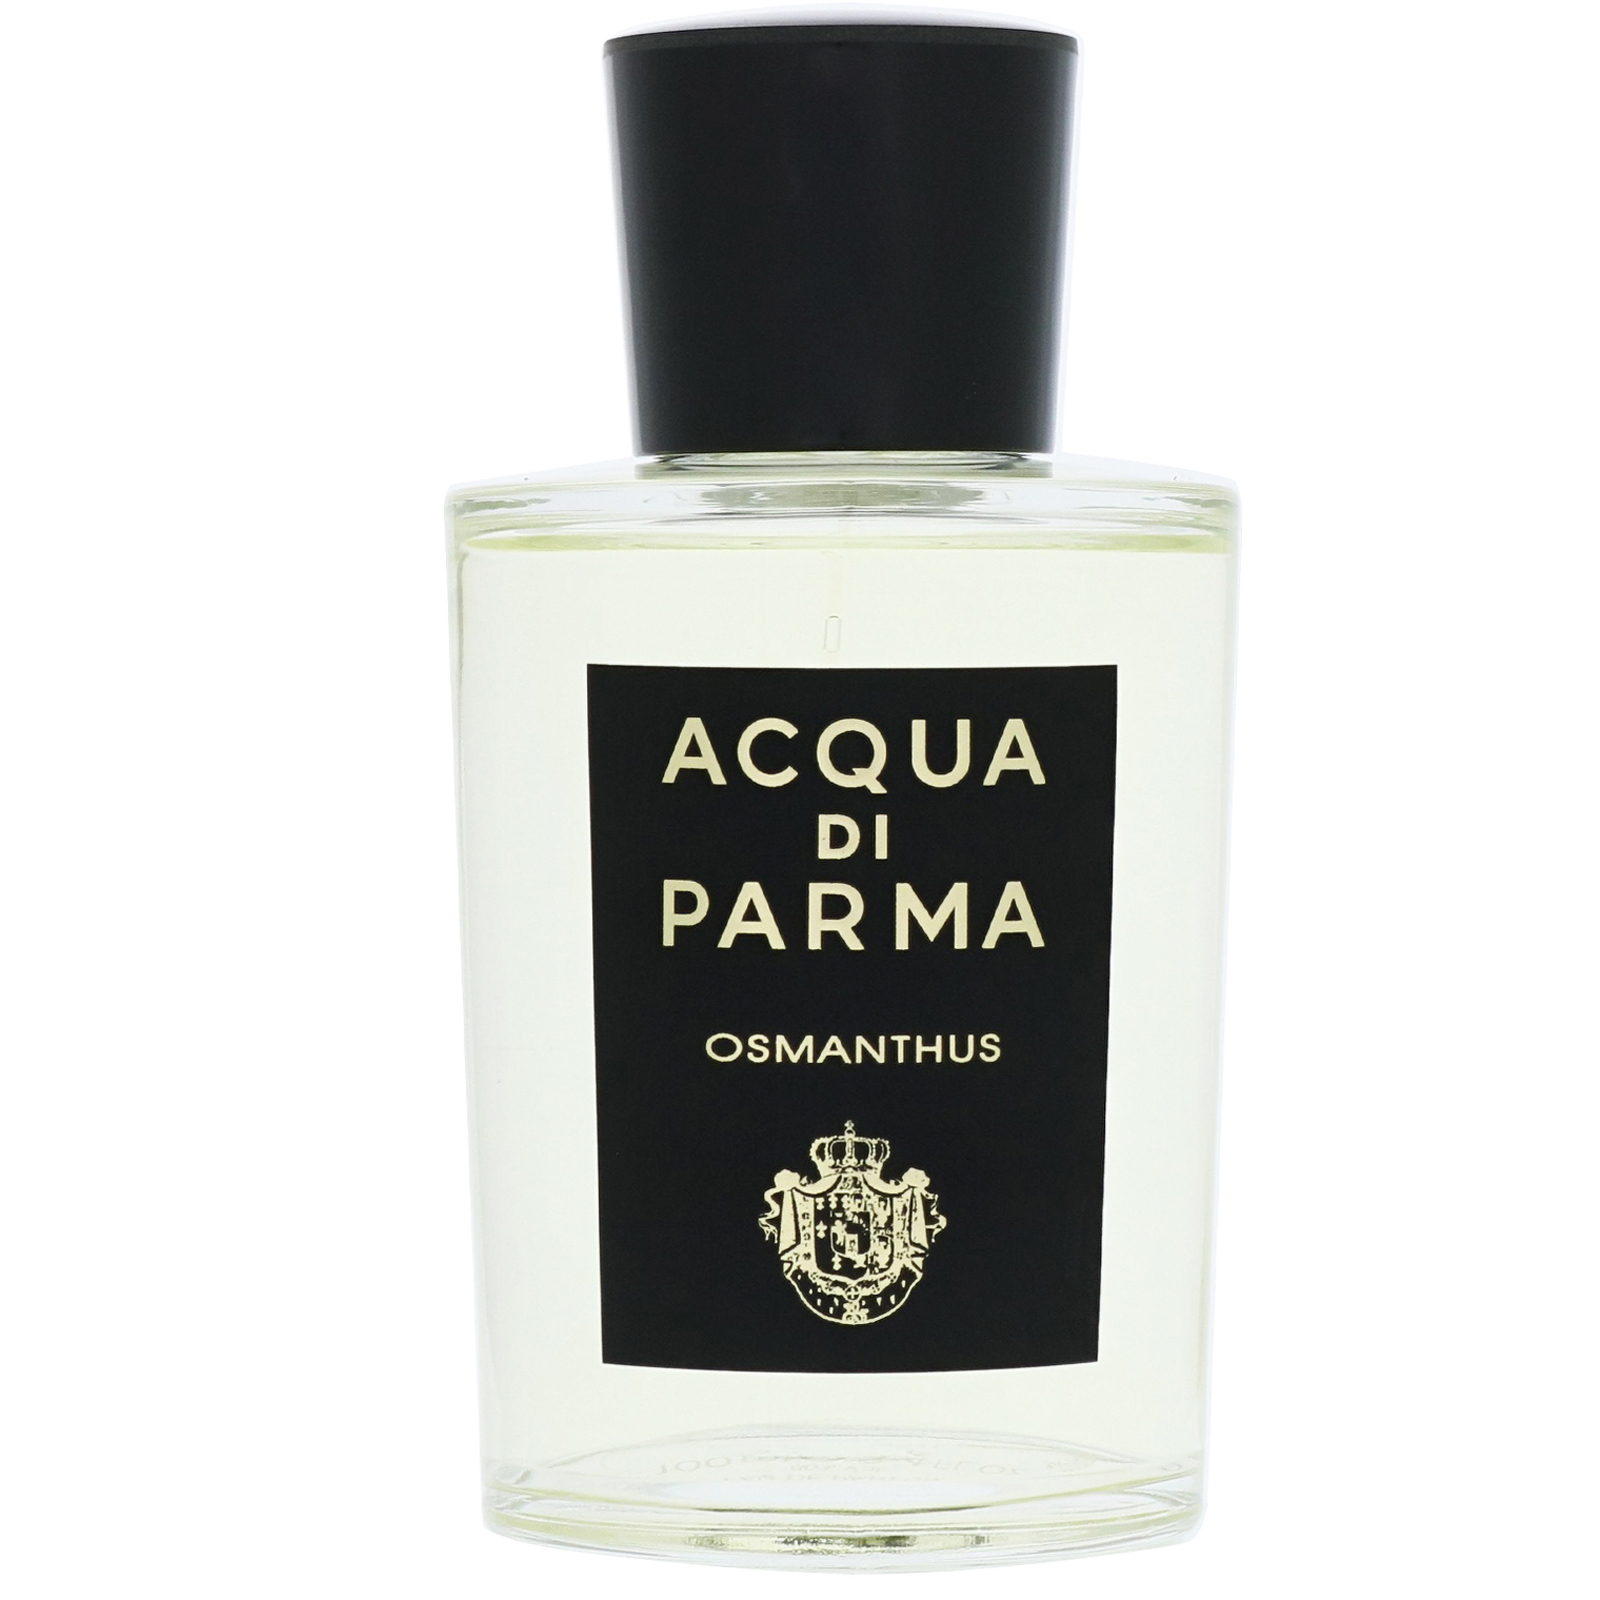 Acqua Di Parma Osmanthus Eau de Parfum Spray 100ml